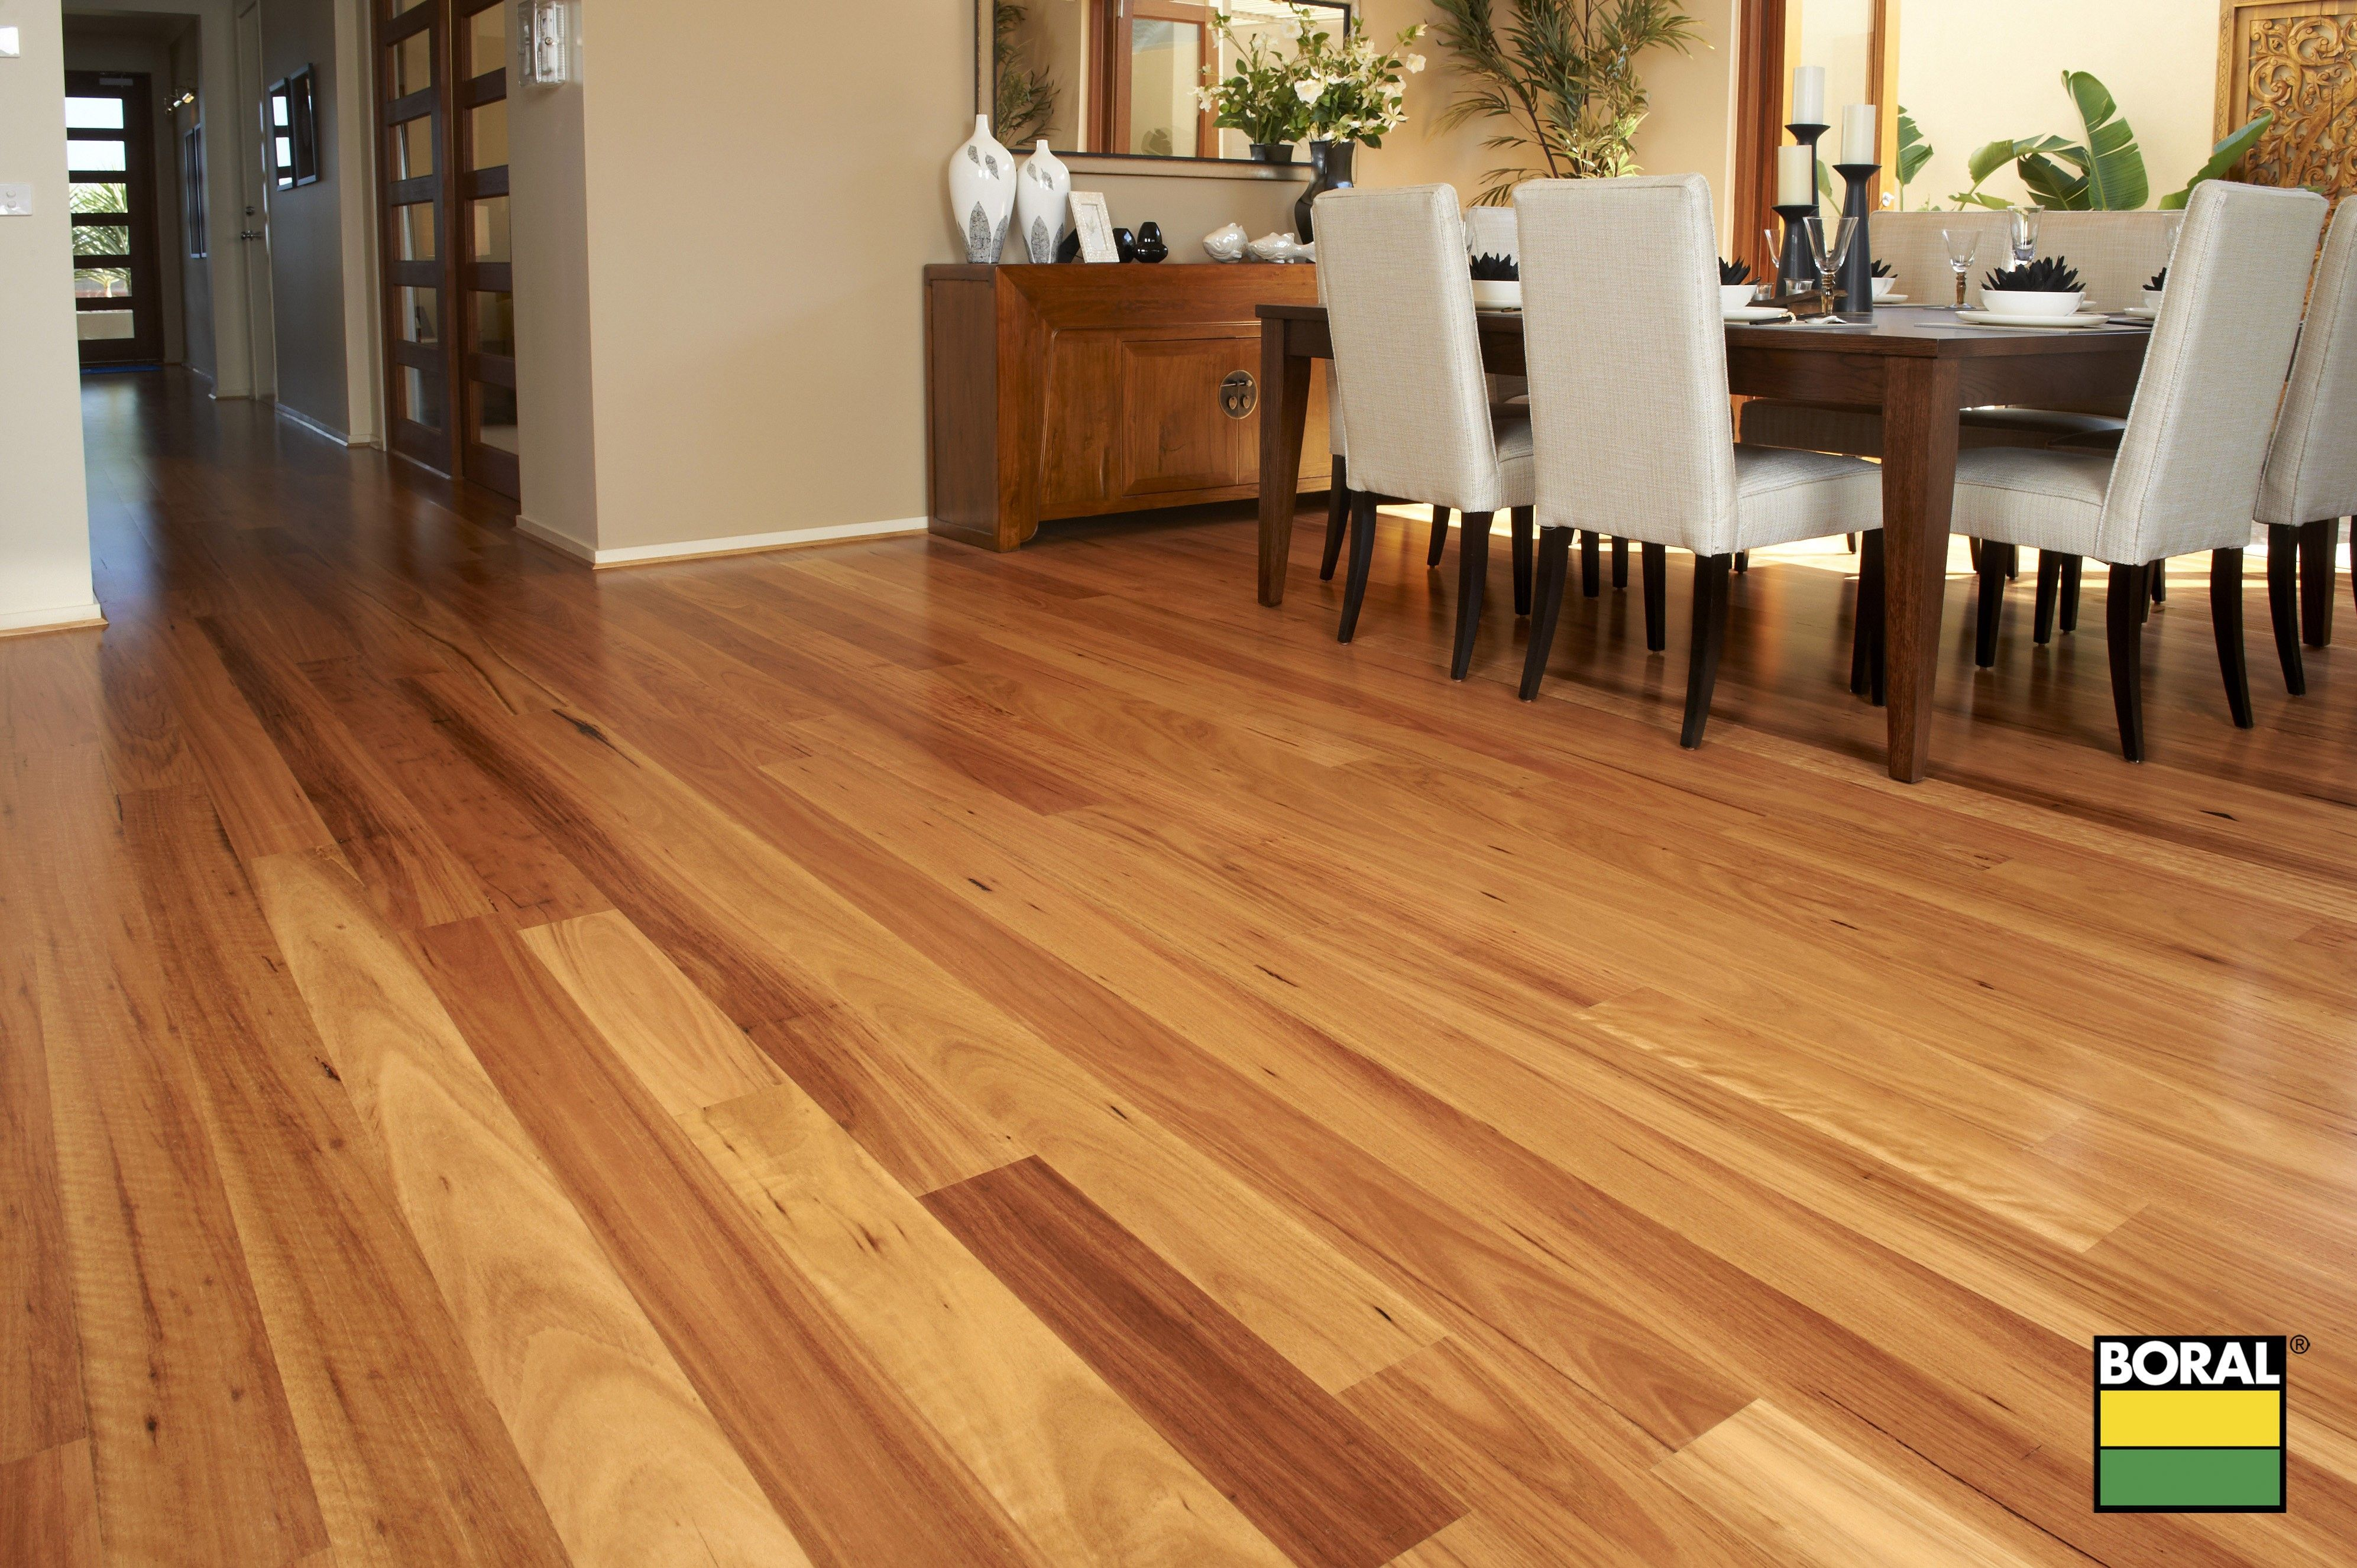 Flooring eclectic hardwood flooring boston by paris ceramics - House